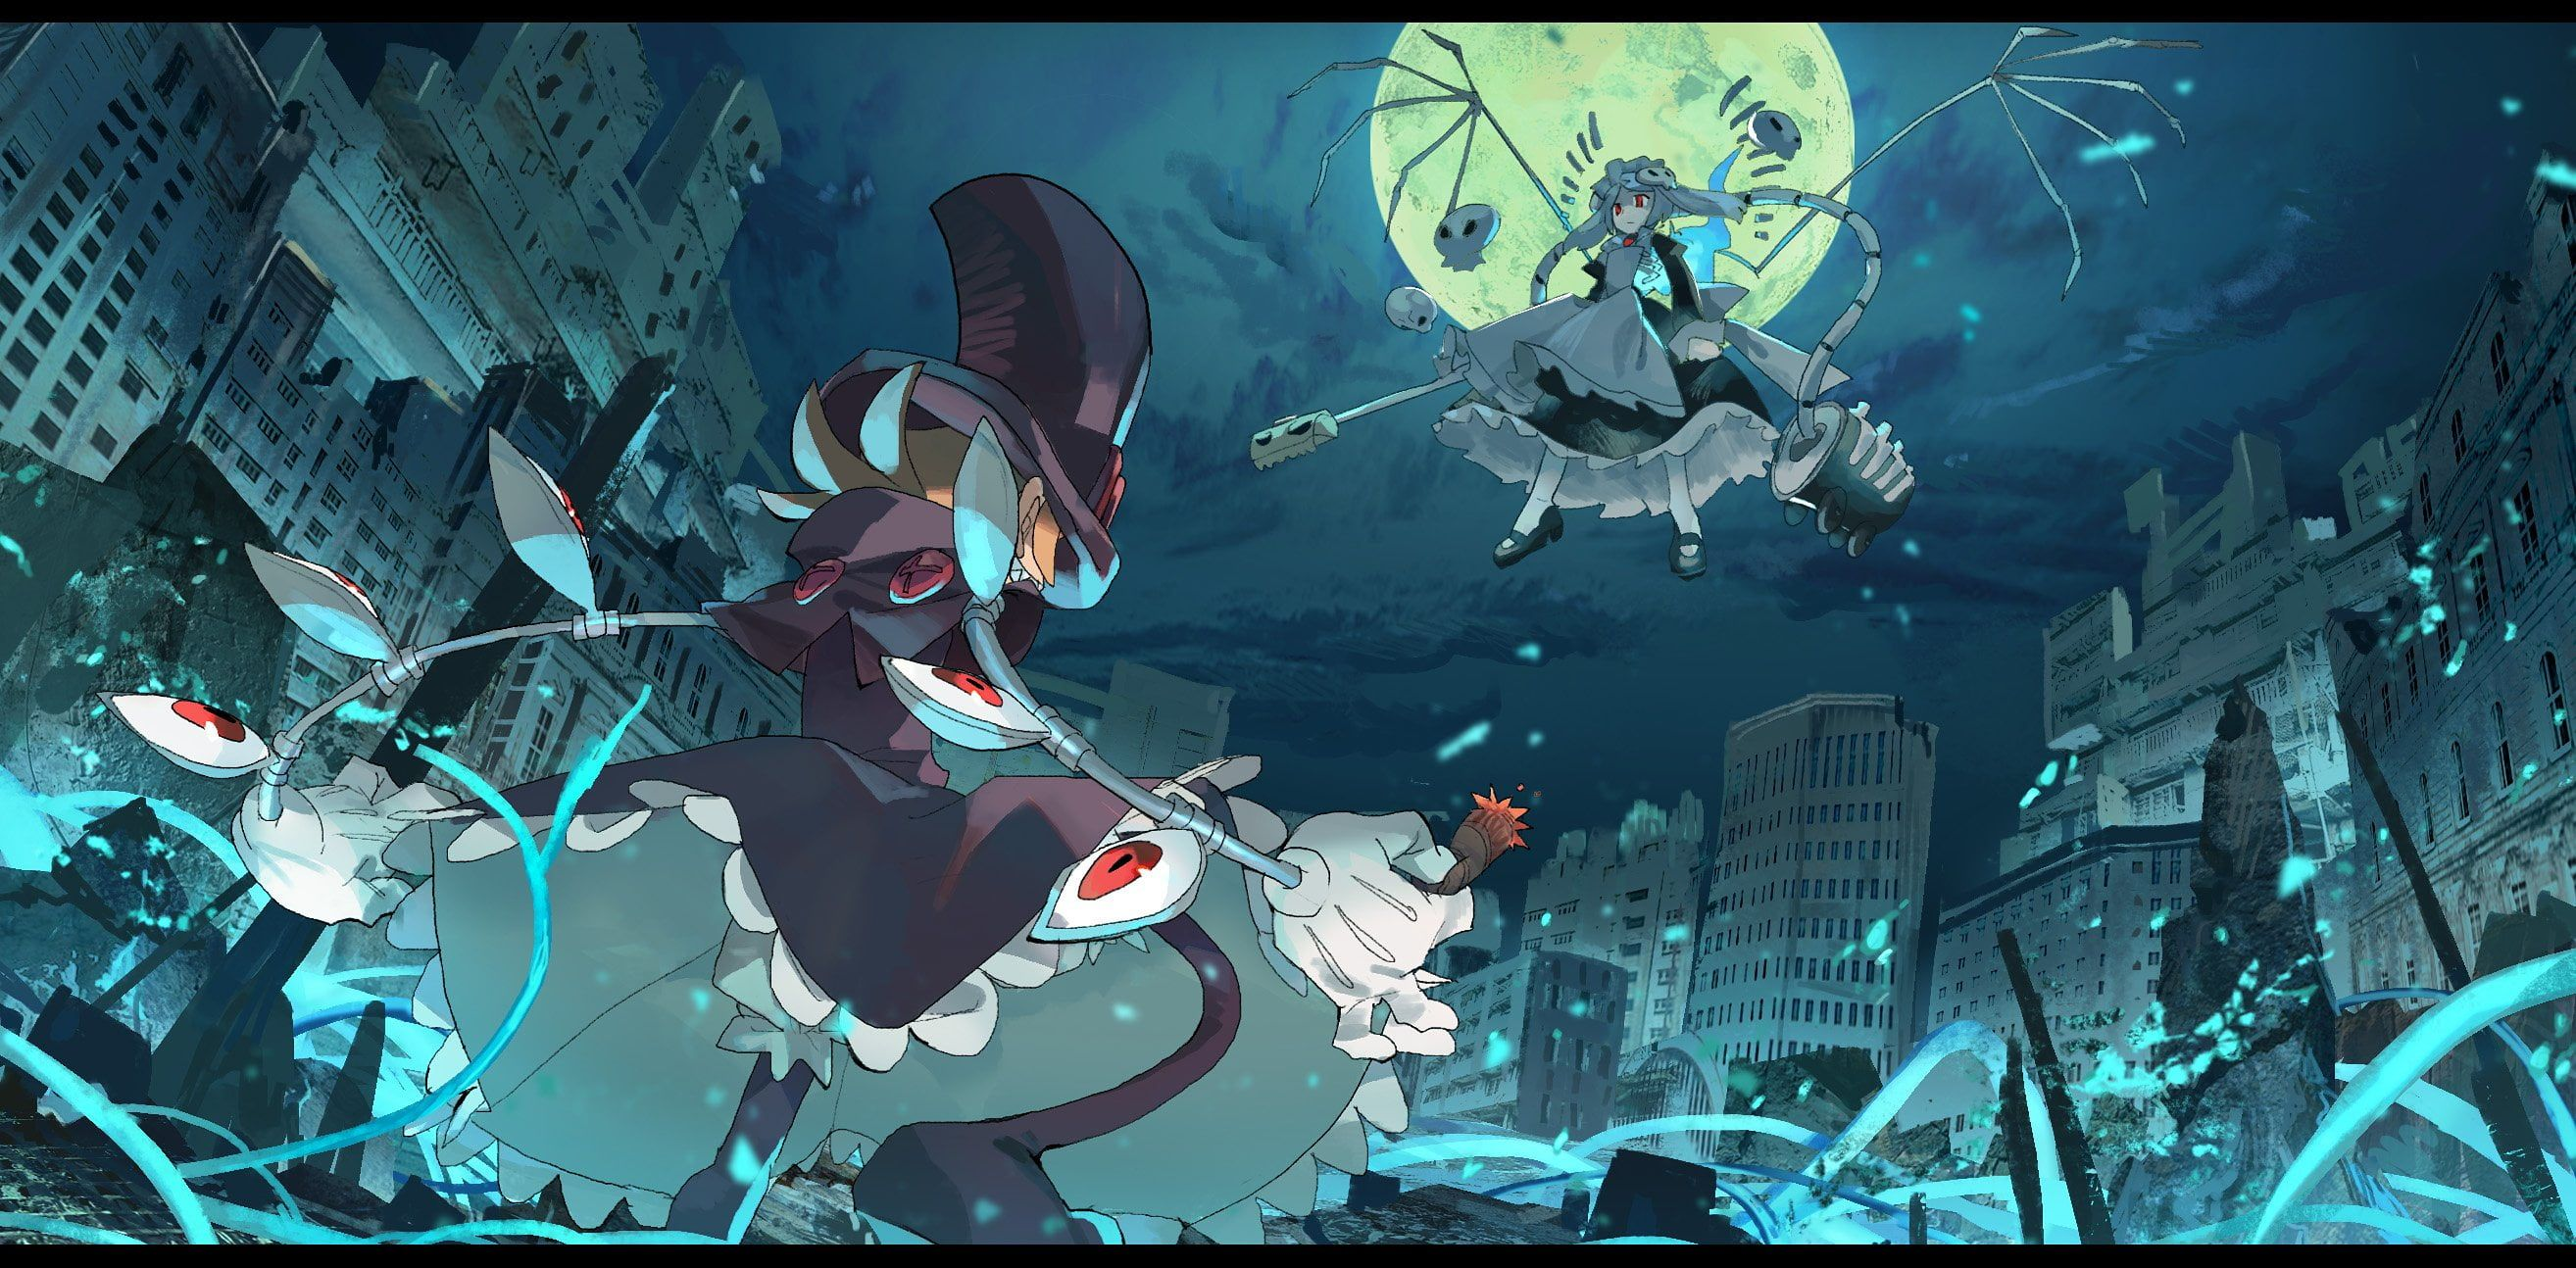 Video Game Skullgirls Marie Skullgirls Peacock Skullgirls 2k Wallpaper Hdwallpaper Desktop In 2020 Skullgirls Anime Wallpaper Anime